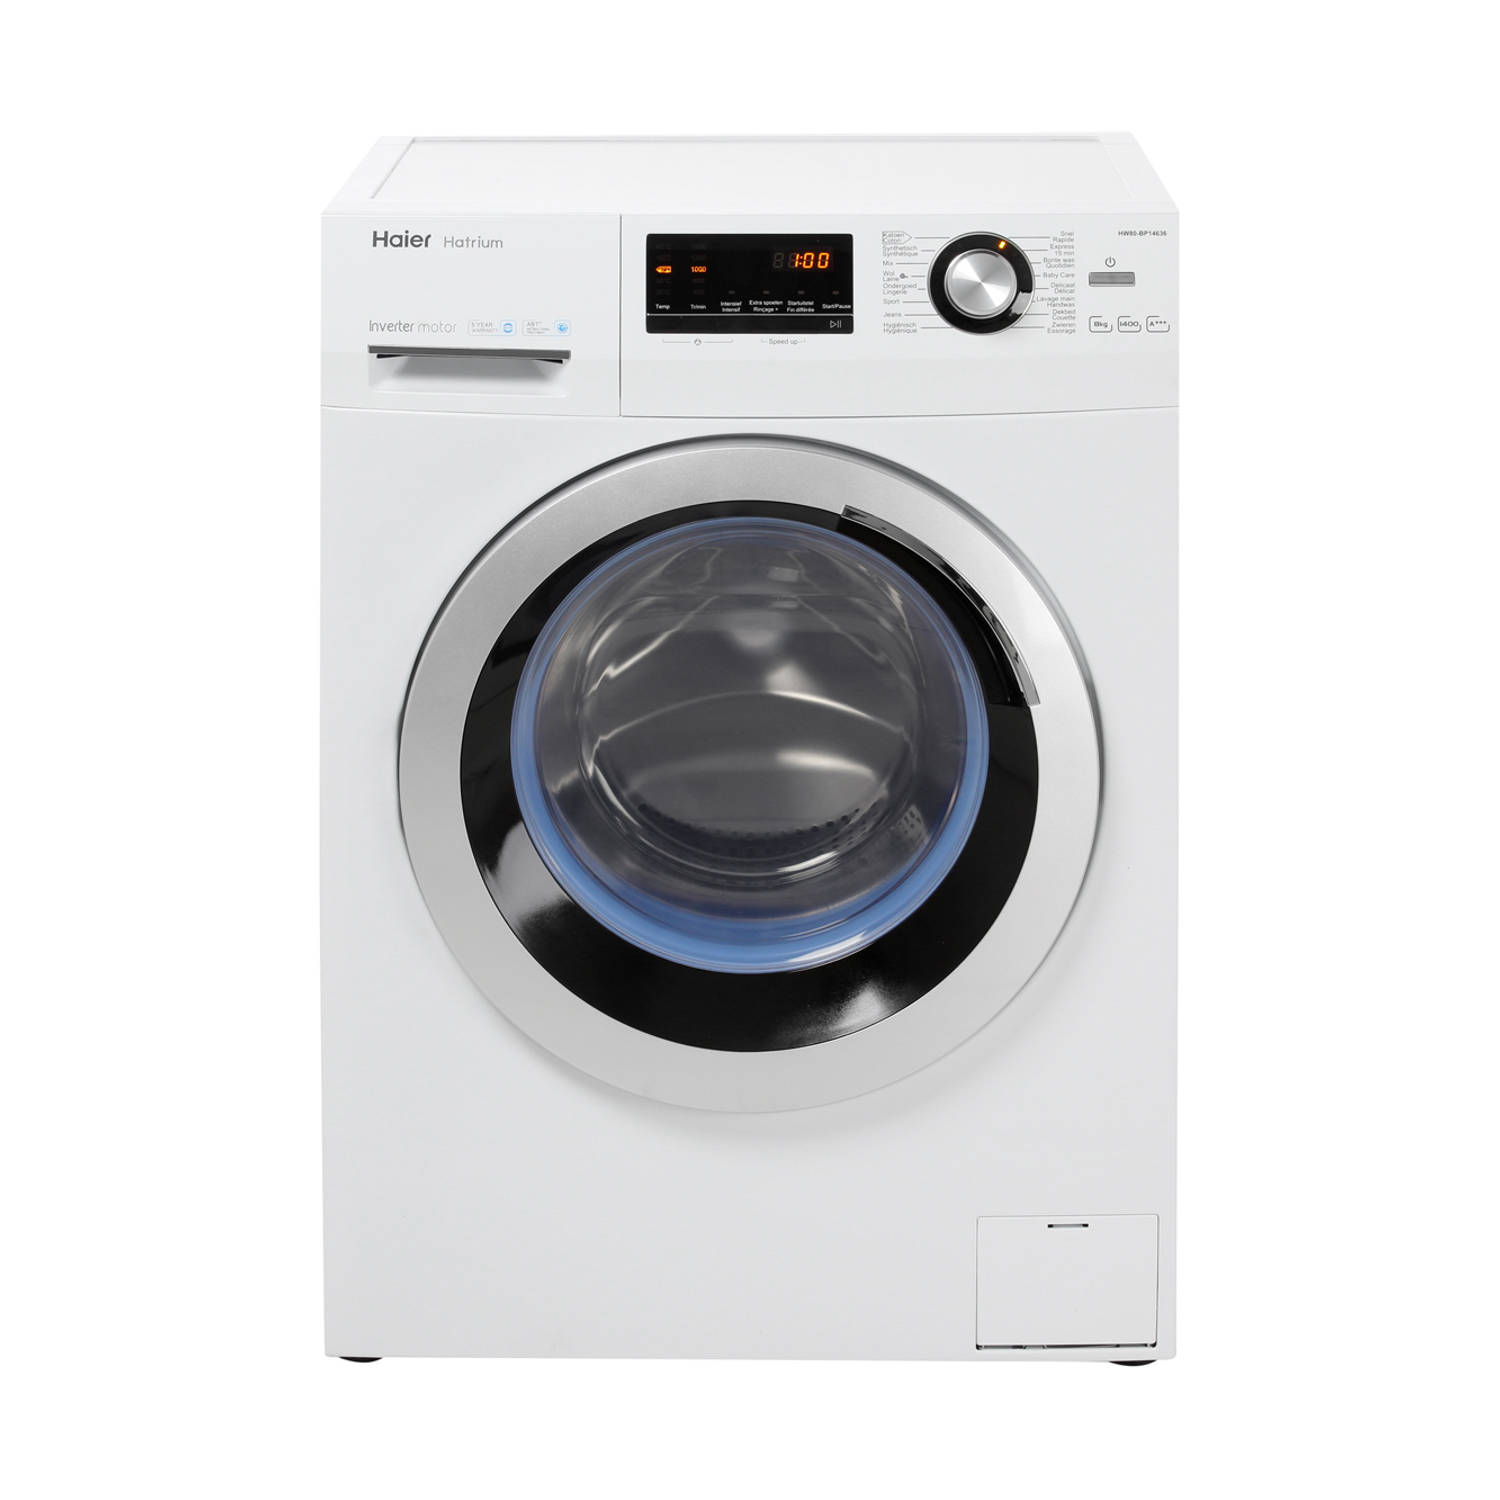 Haier HW80-BP14636 wasmachines - Wit